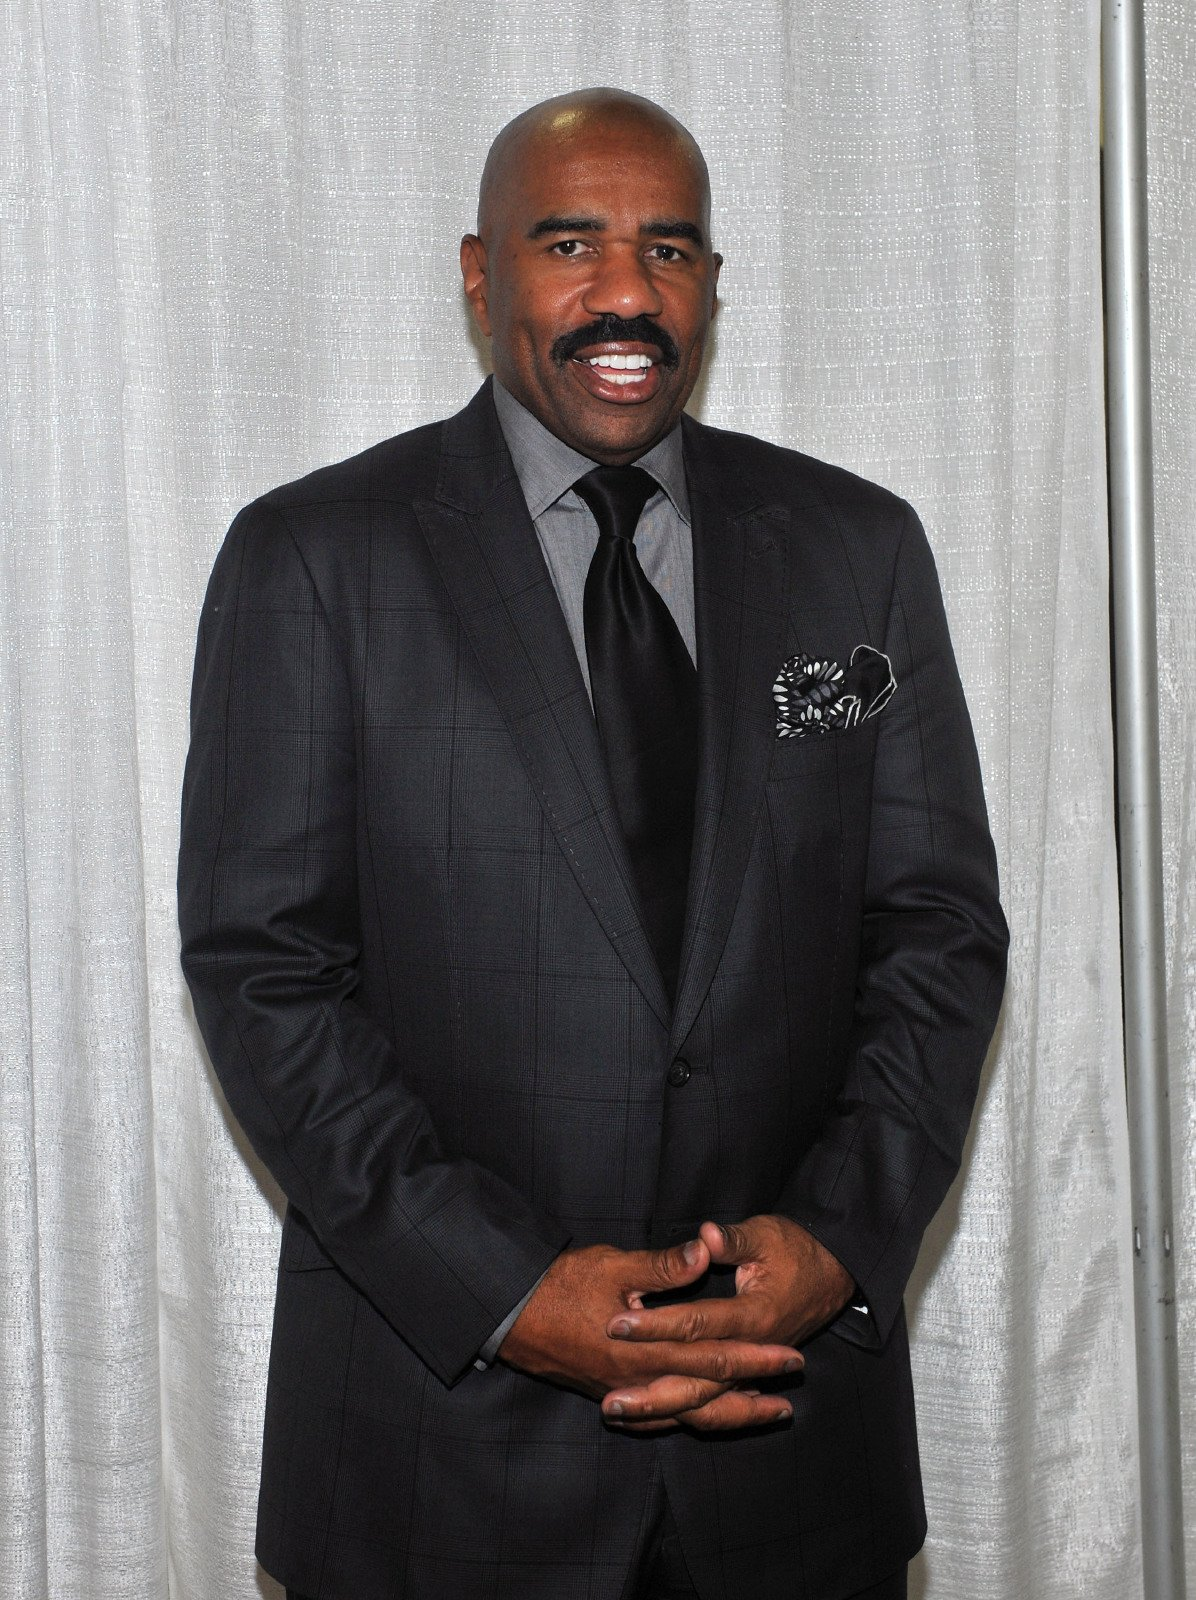 Actor/comedian Steve Harvey attends the 2011 Steve Harvey Mentoring Weekend at the Jacob Javits Center on October 7, 2011 | Photo: Getty Images